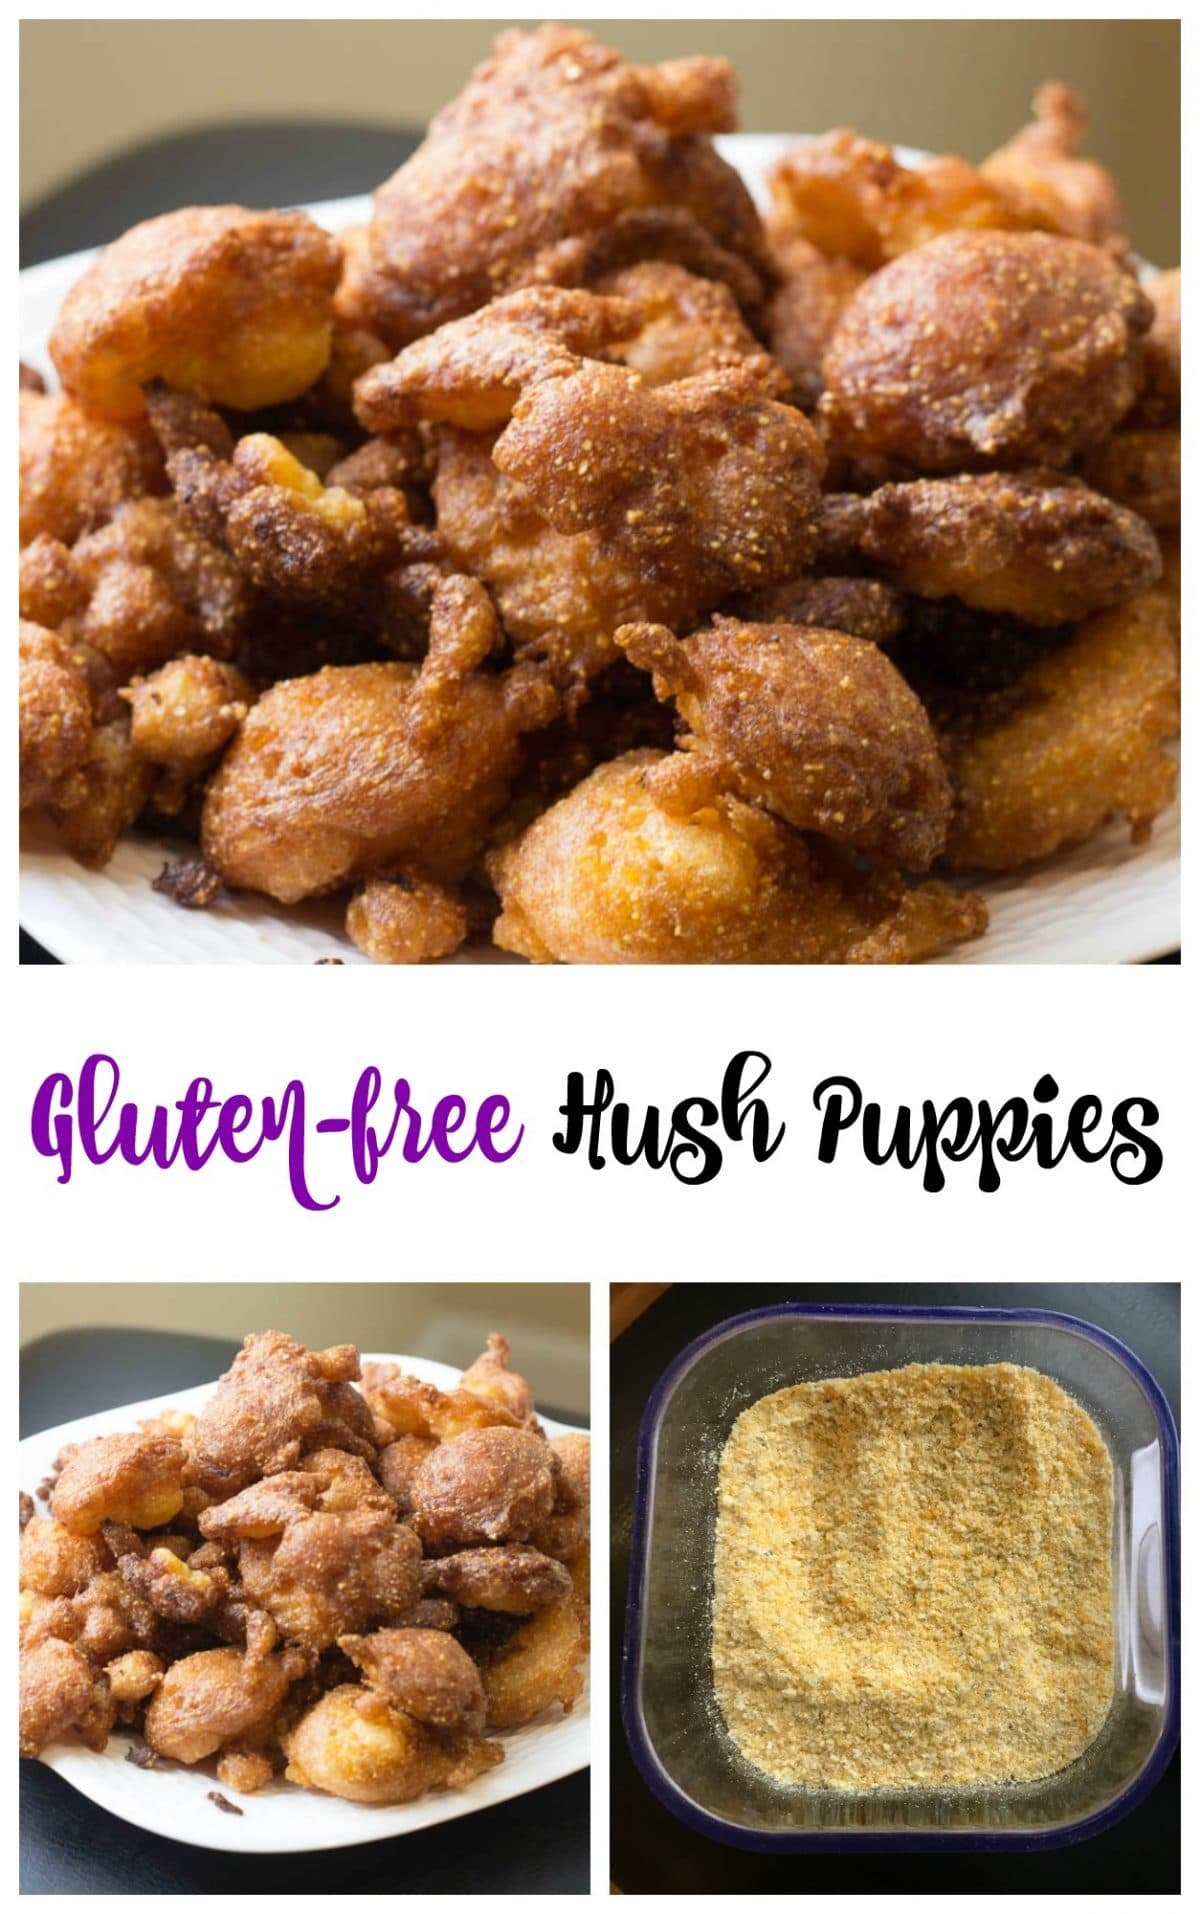 Gluten-free hush puppies || Erin Brighton | gluten free | easy recipes | Southern cooking | Got To Be NC